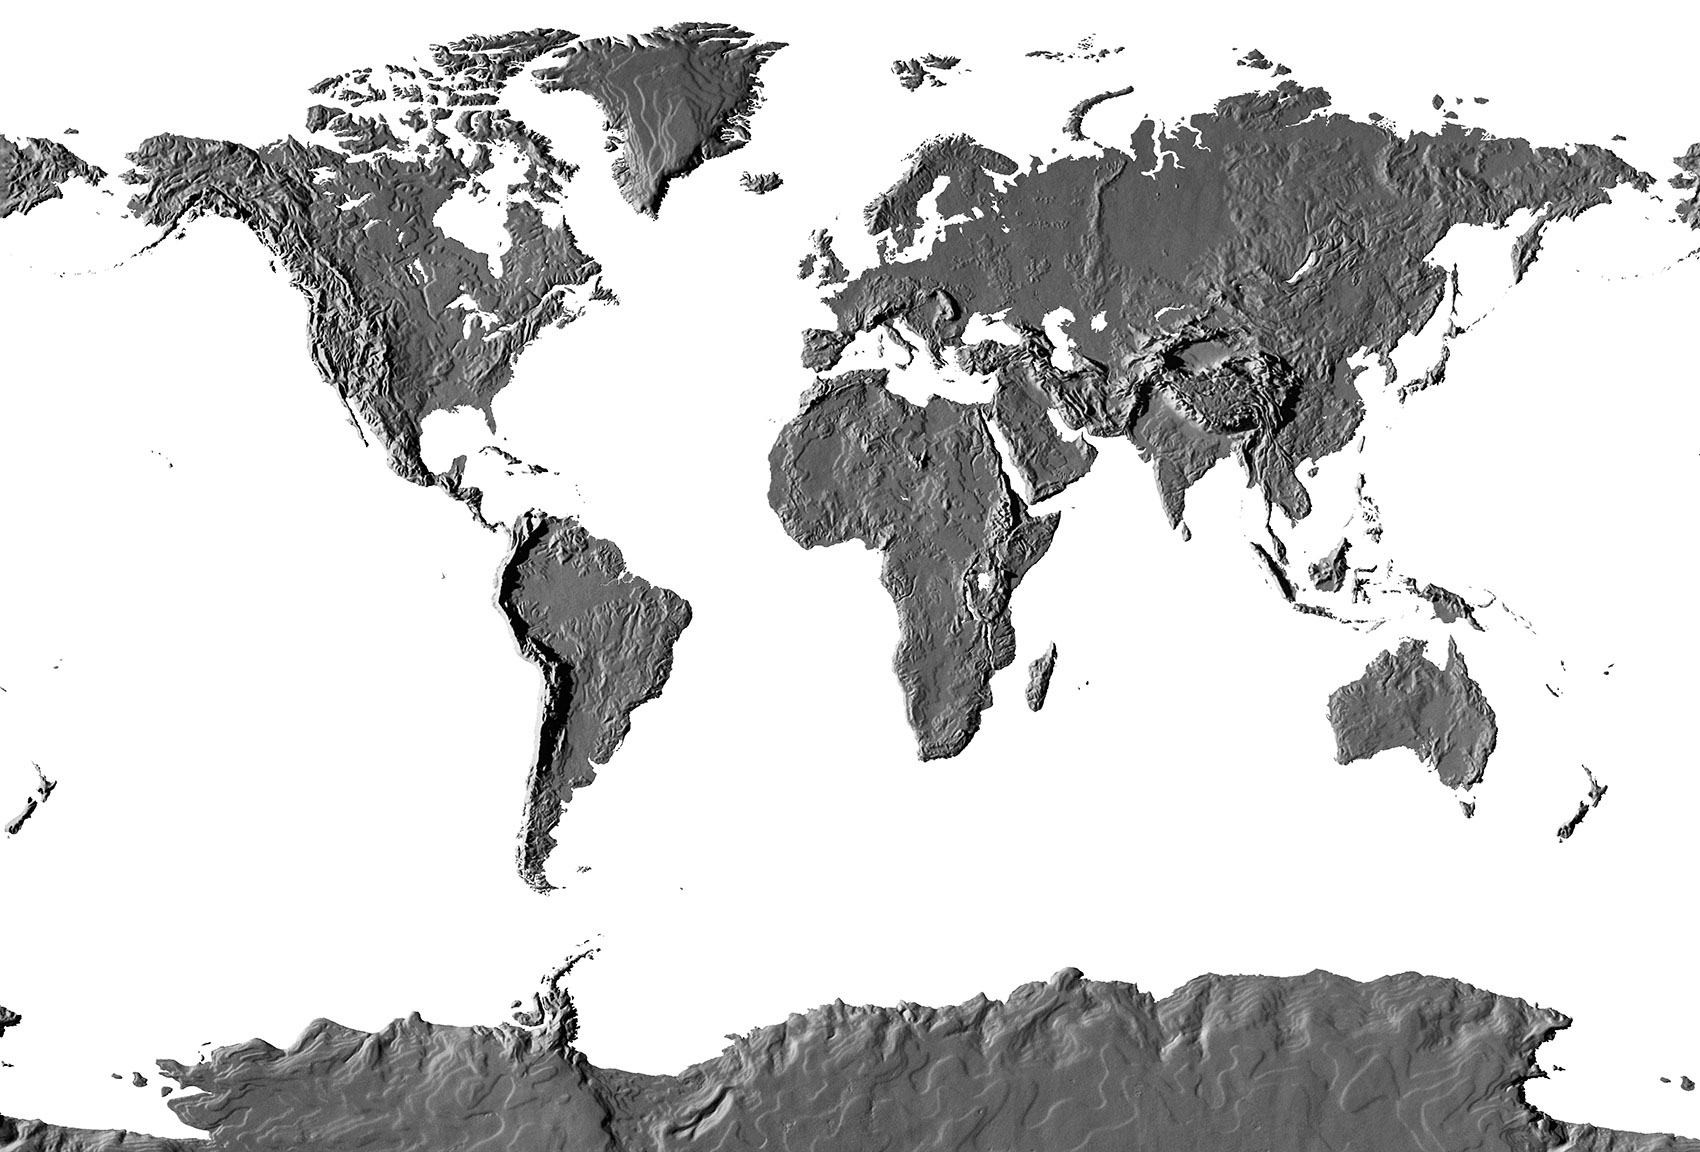 IllustrationArchitecture And MapsMonochrome World Topographic - Topographic map of the world